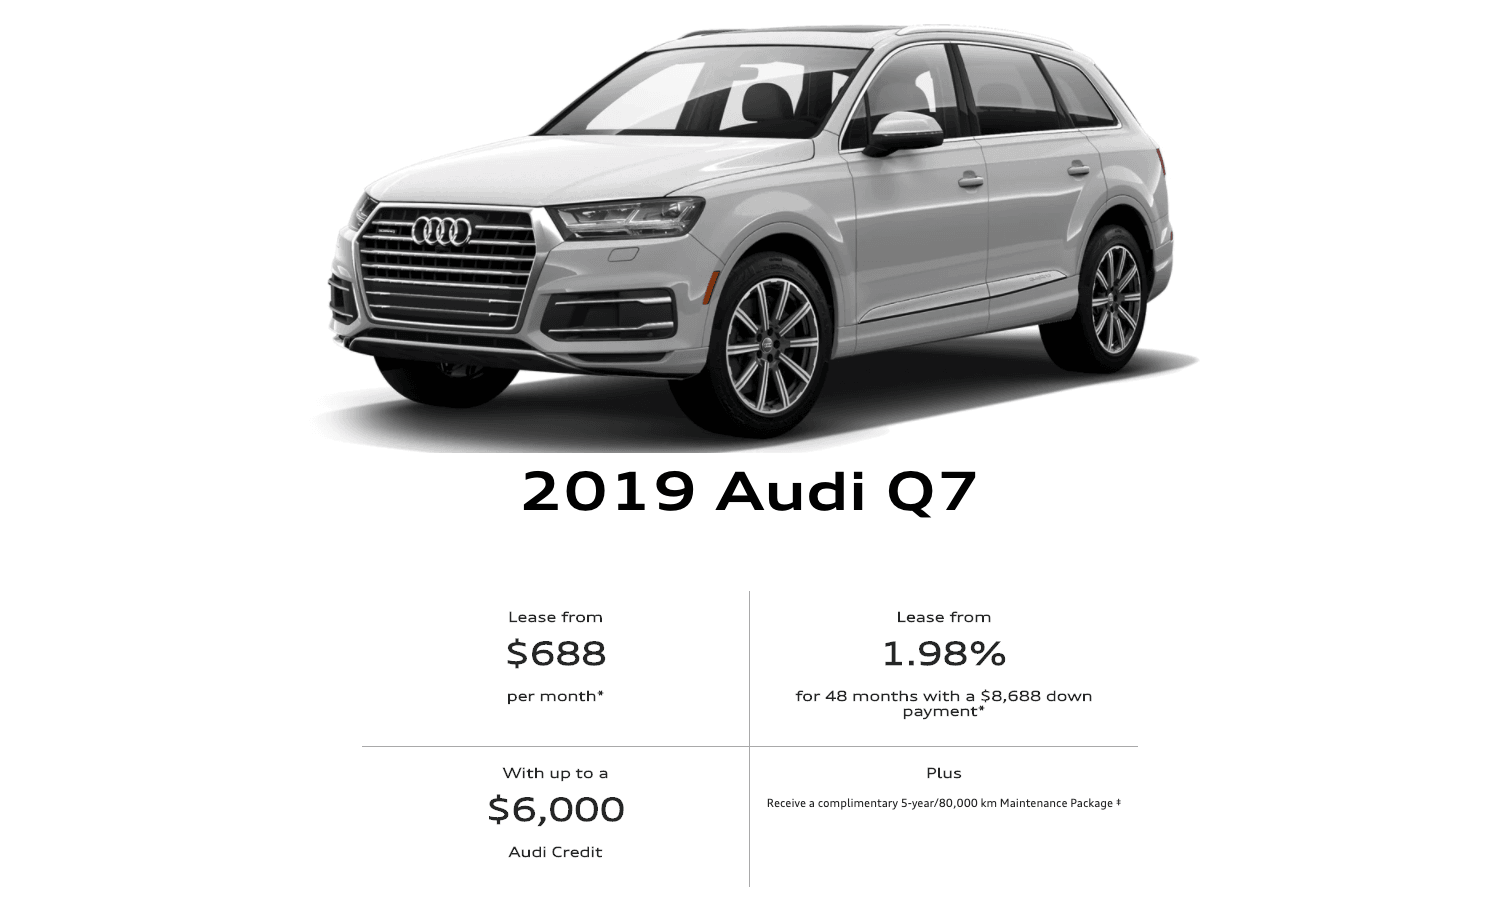 2019 Audi Q7 To